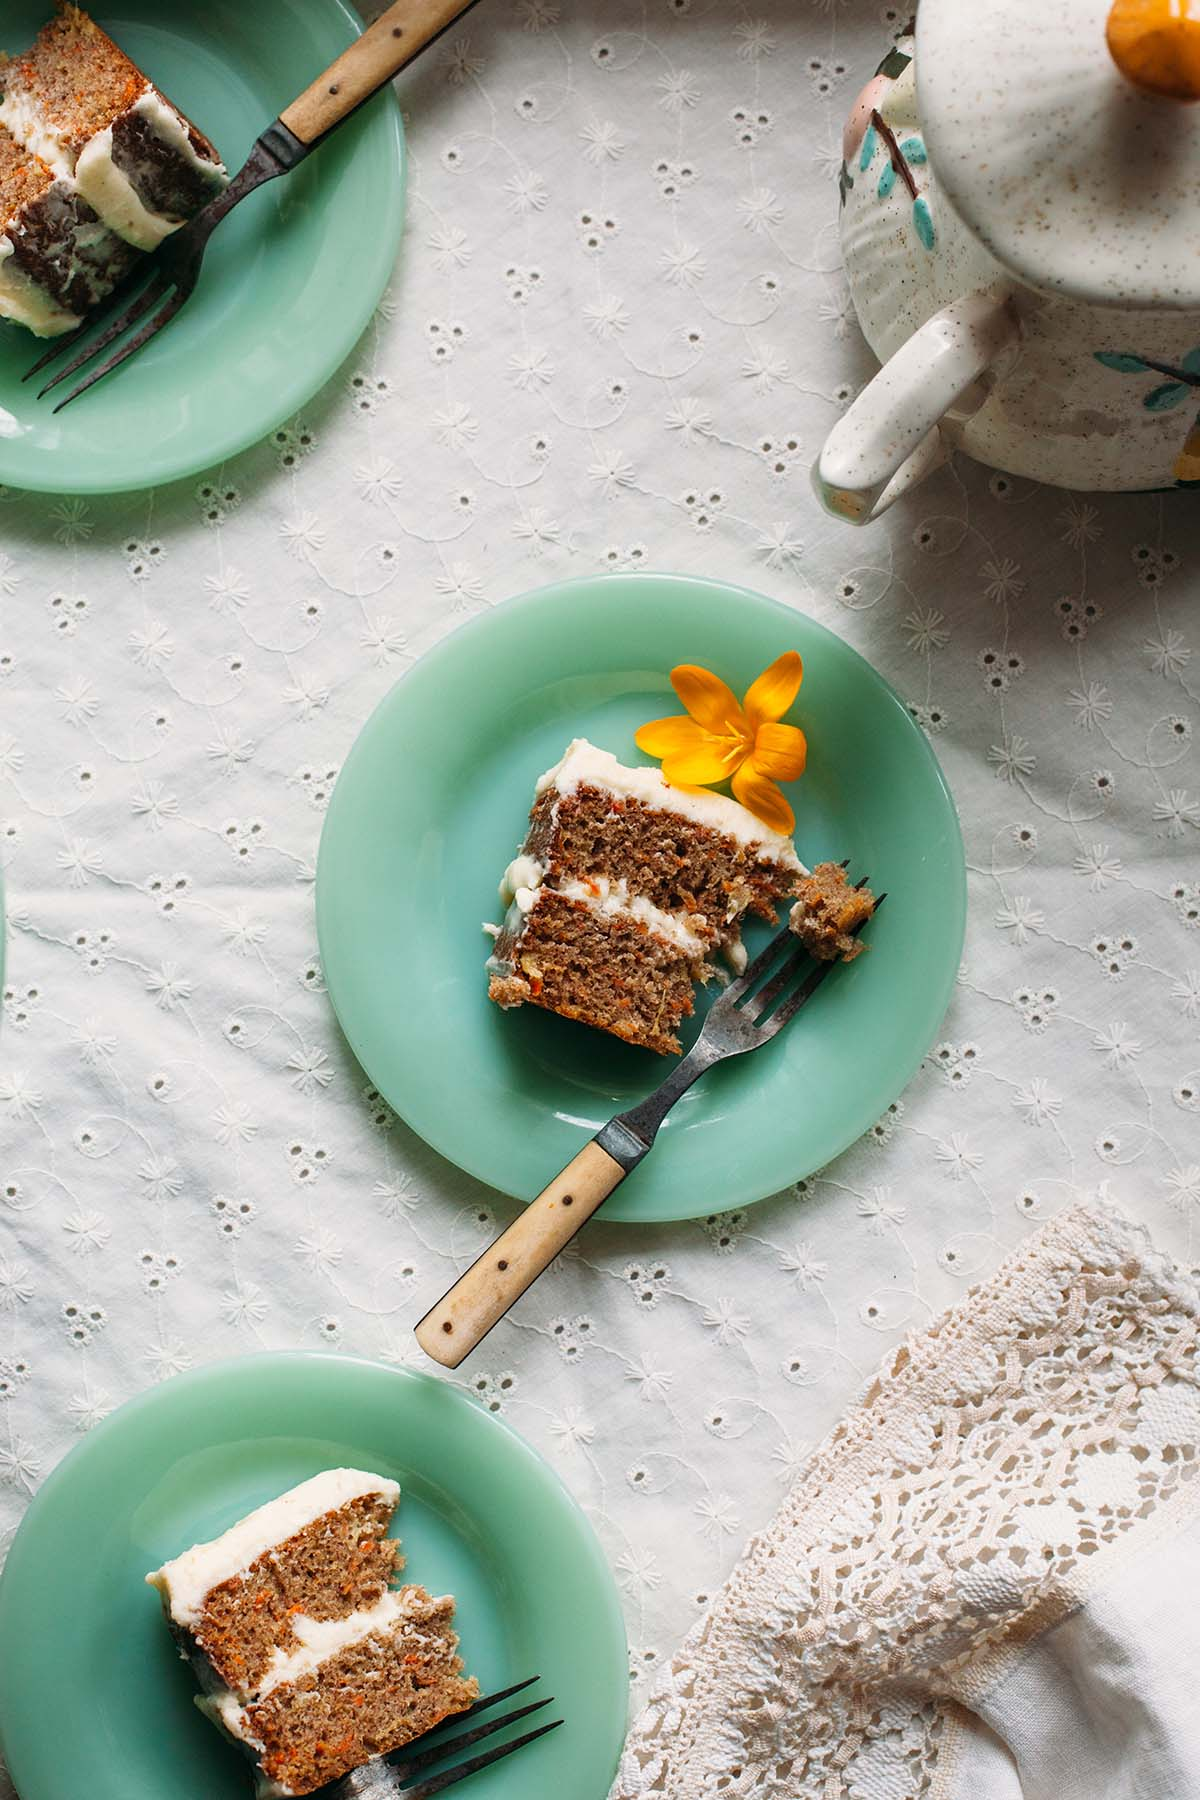 Overhead shot of a slice of spiced carrot cake on a green milk glass plate.